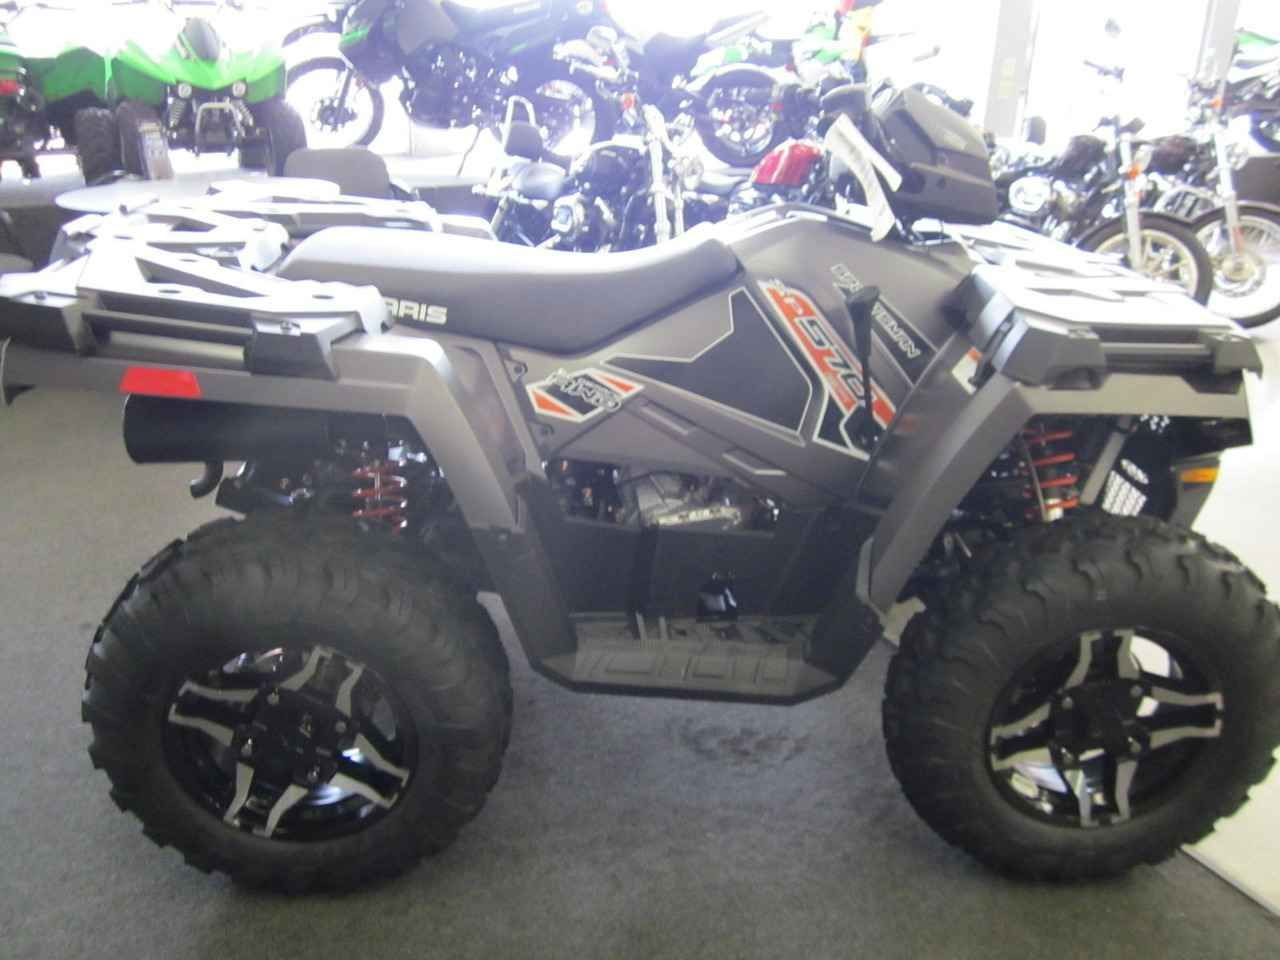 New 2016 Polaris SPORTSMAN 570 SP EPS ATVs For Sale in California. •Premium SP Performance Package•Powerful 44 Horsepower ProStar® Engine•High Performance Close Ratio On-Demand All Wheel Drive (AWD)